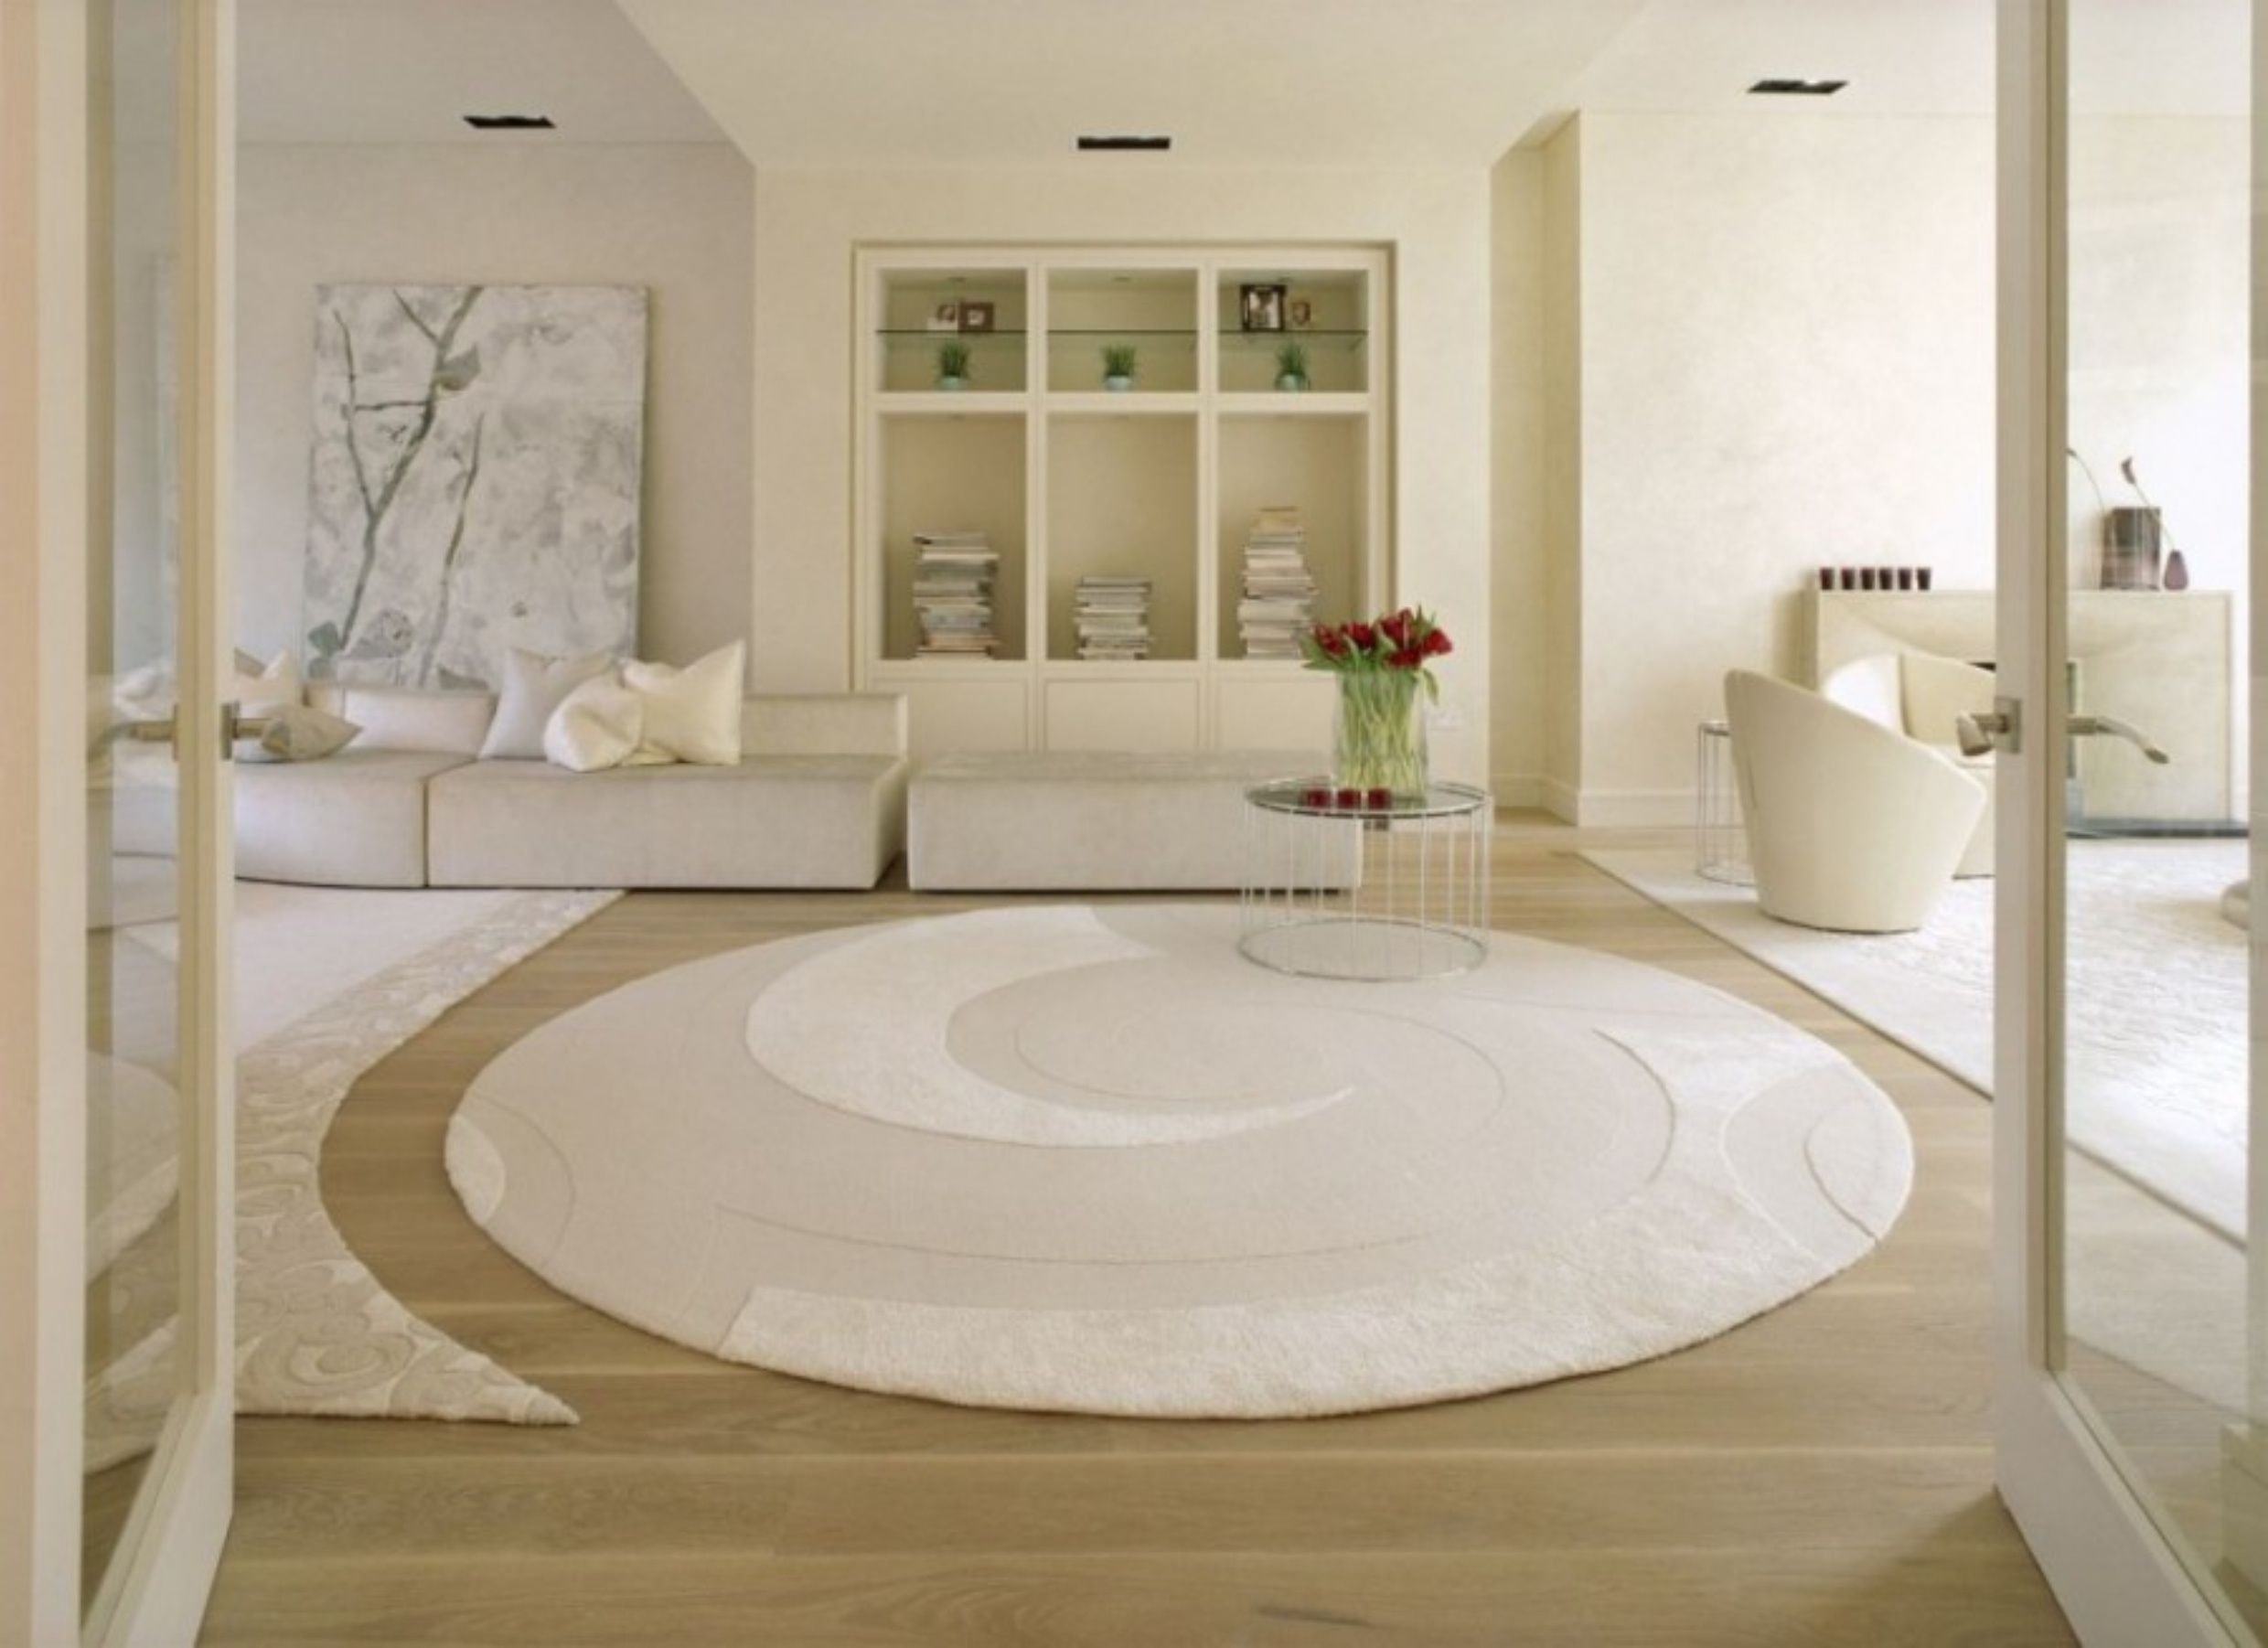 White Round Extra Large Bathroom Rug Large Bathroom Rugs